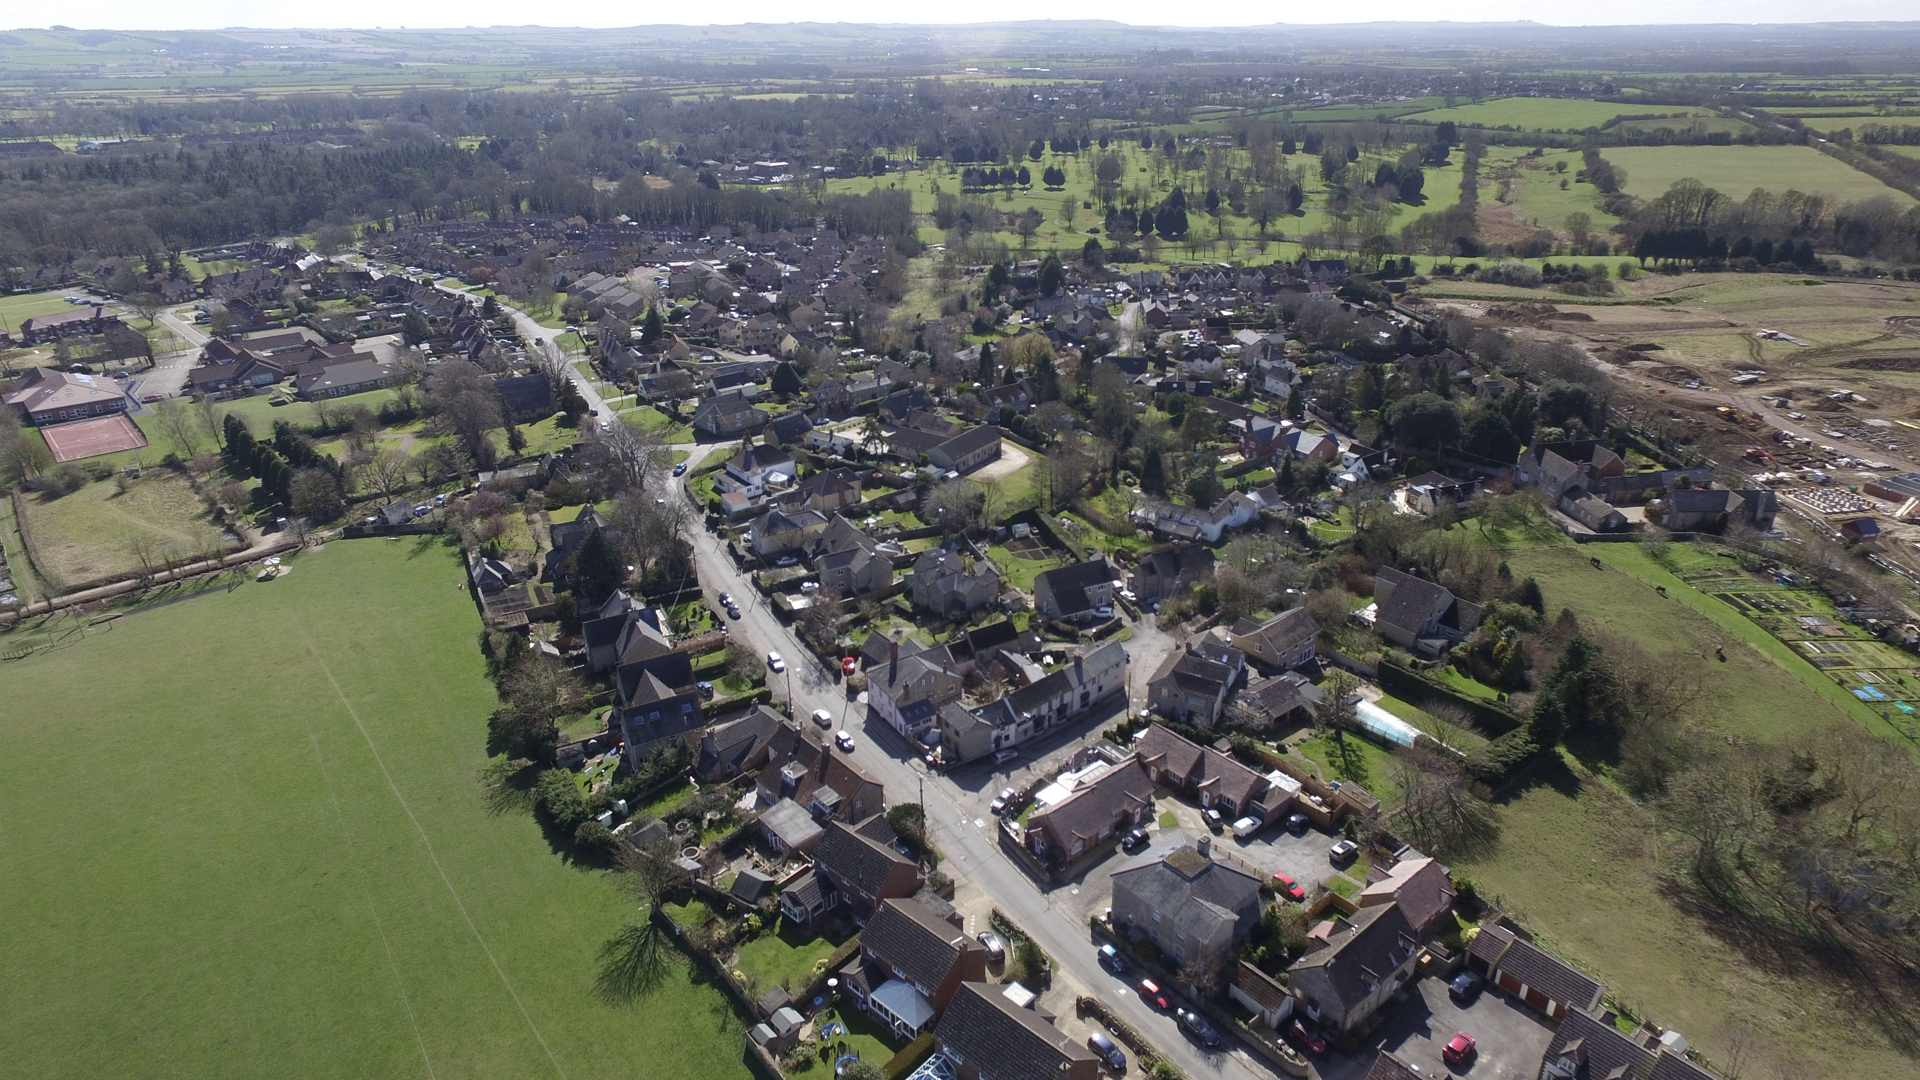 An aerial view of Watchfield Village courtesy of Neil B. Maw